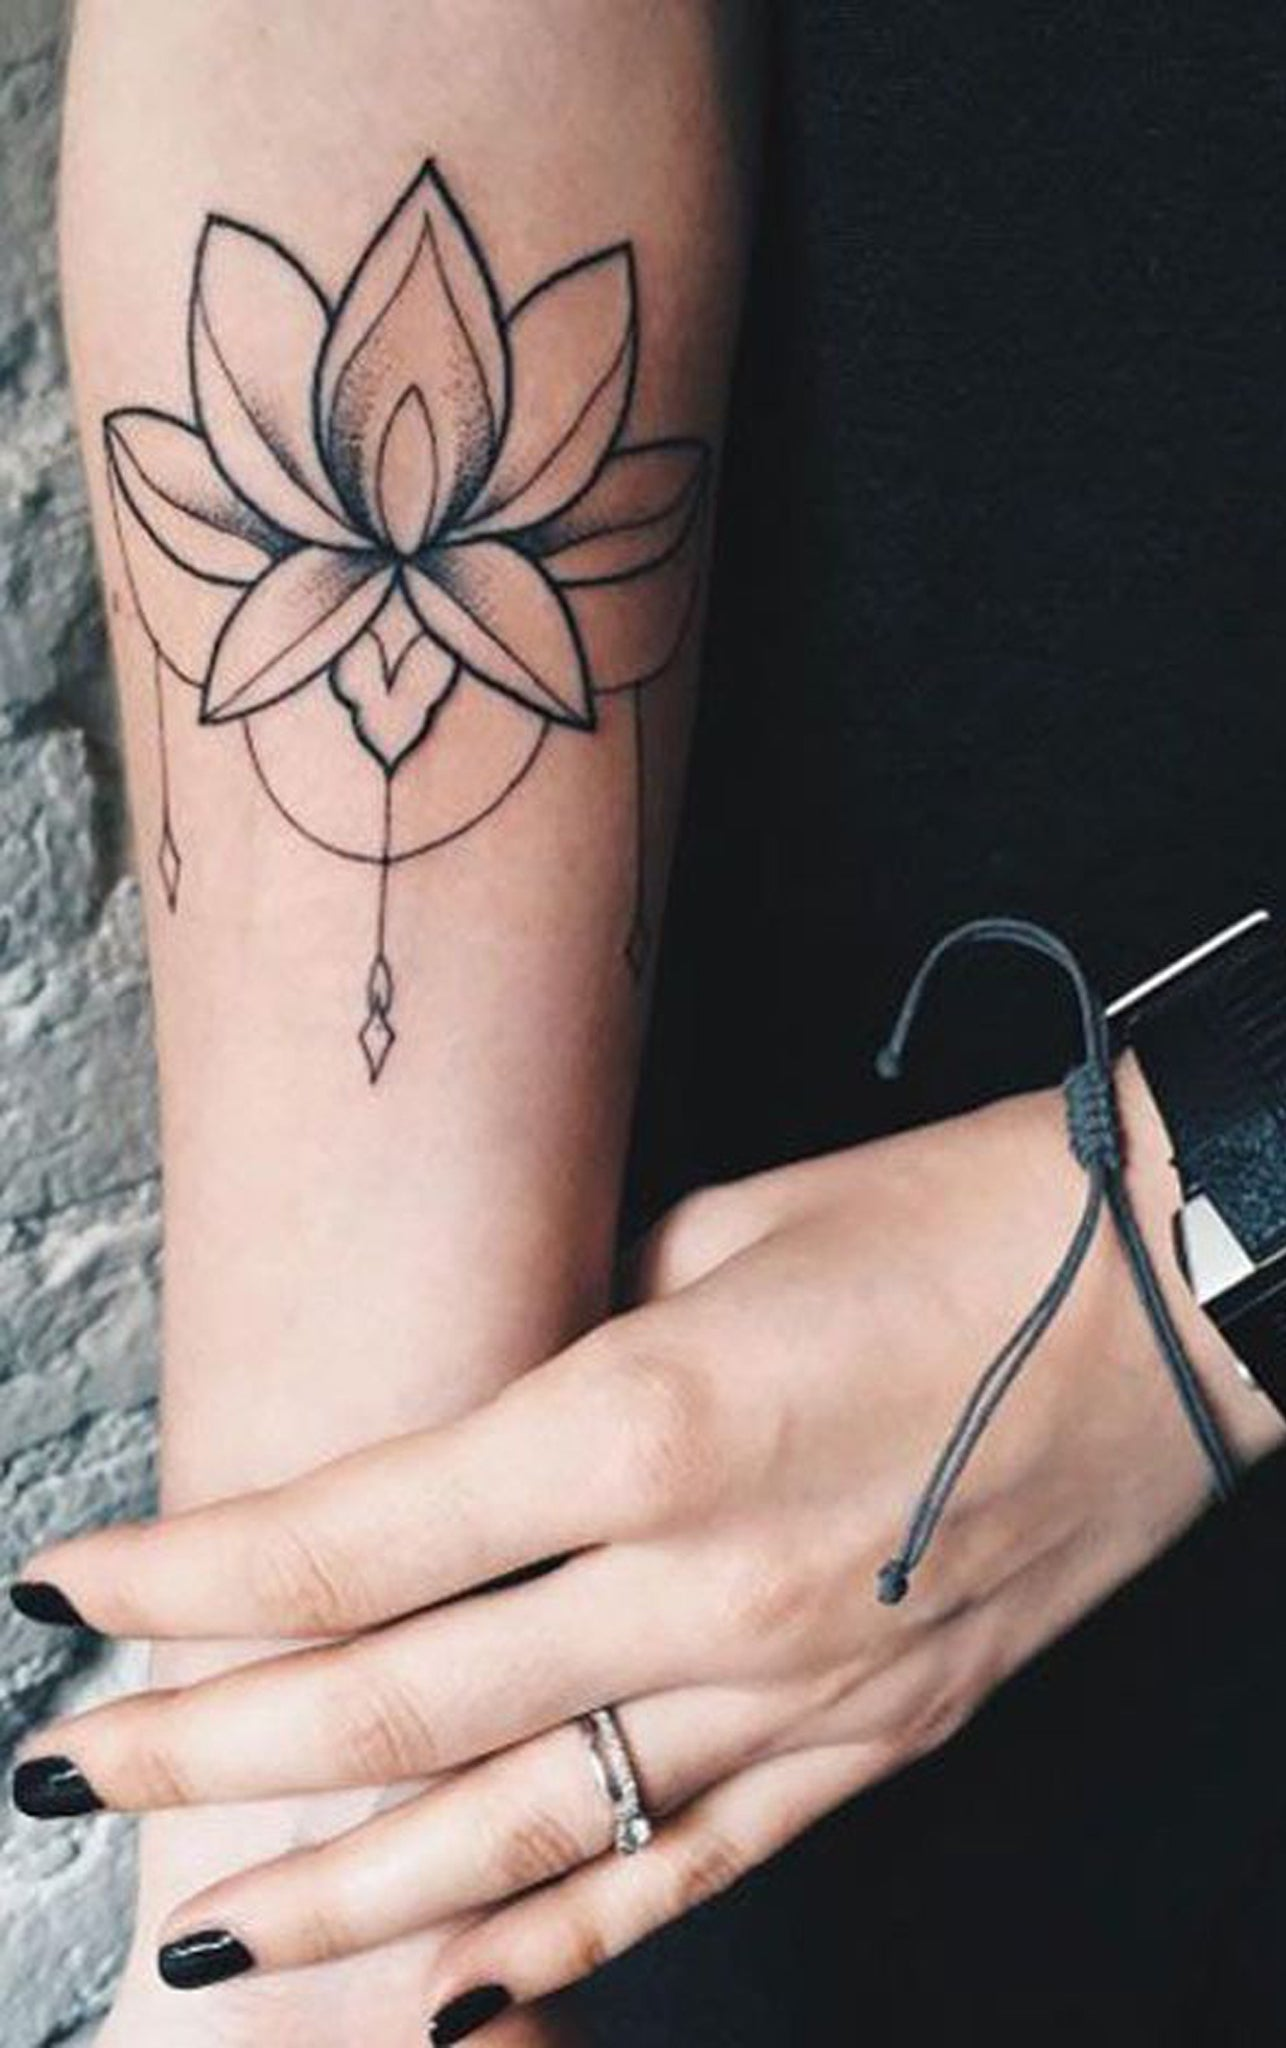 Black and White Lotus Chandelier Forearm Tattoo Ideas for Women - Tribal Bohemian Boho Chic Lily Flower Arm Tat -  ideas del tatuaje del antebrazo de loto para las mujeres - www.MyBodiArt.com